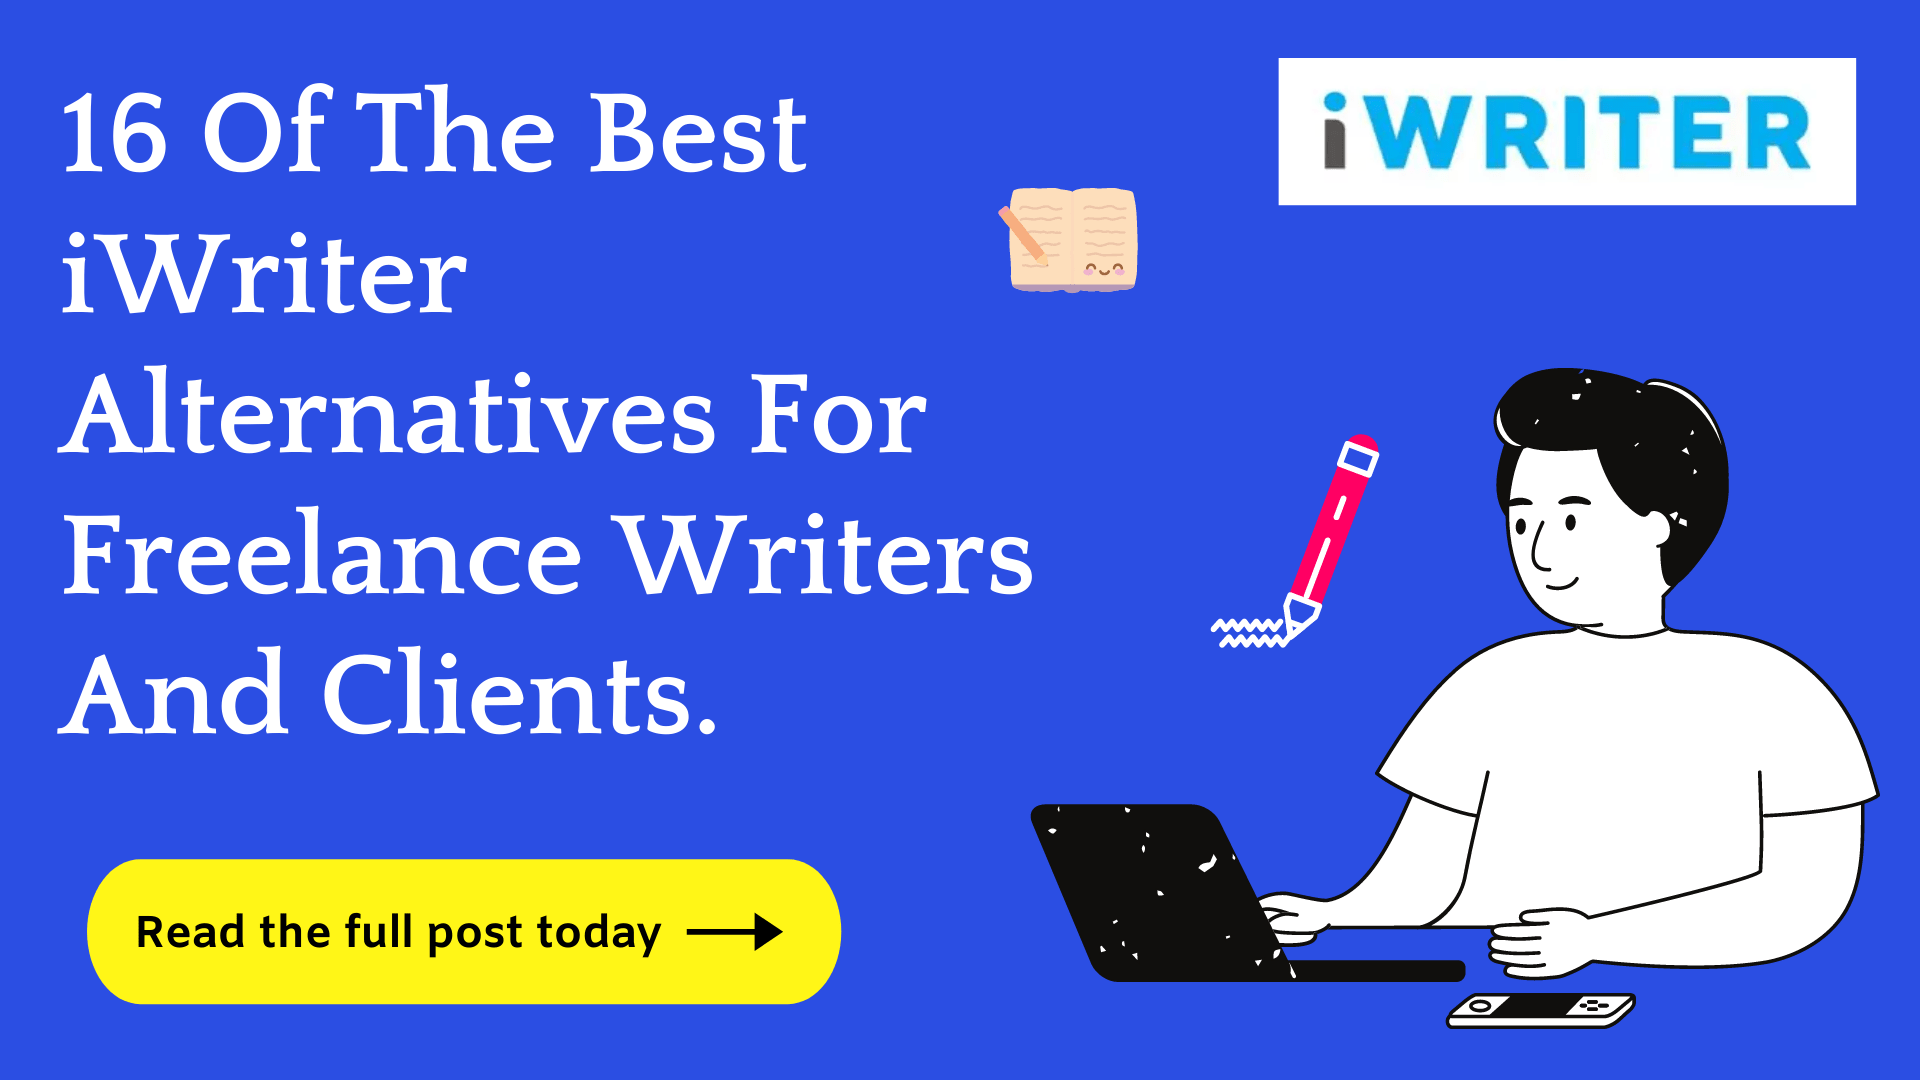 iWriter Alternatives For Writers And Clients